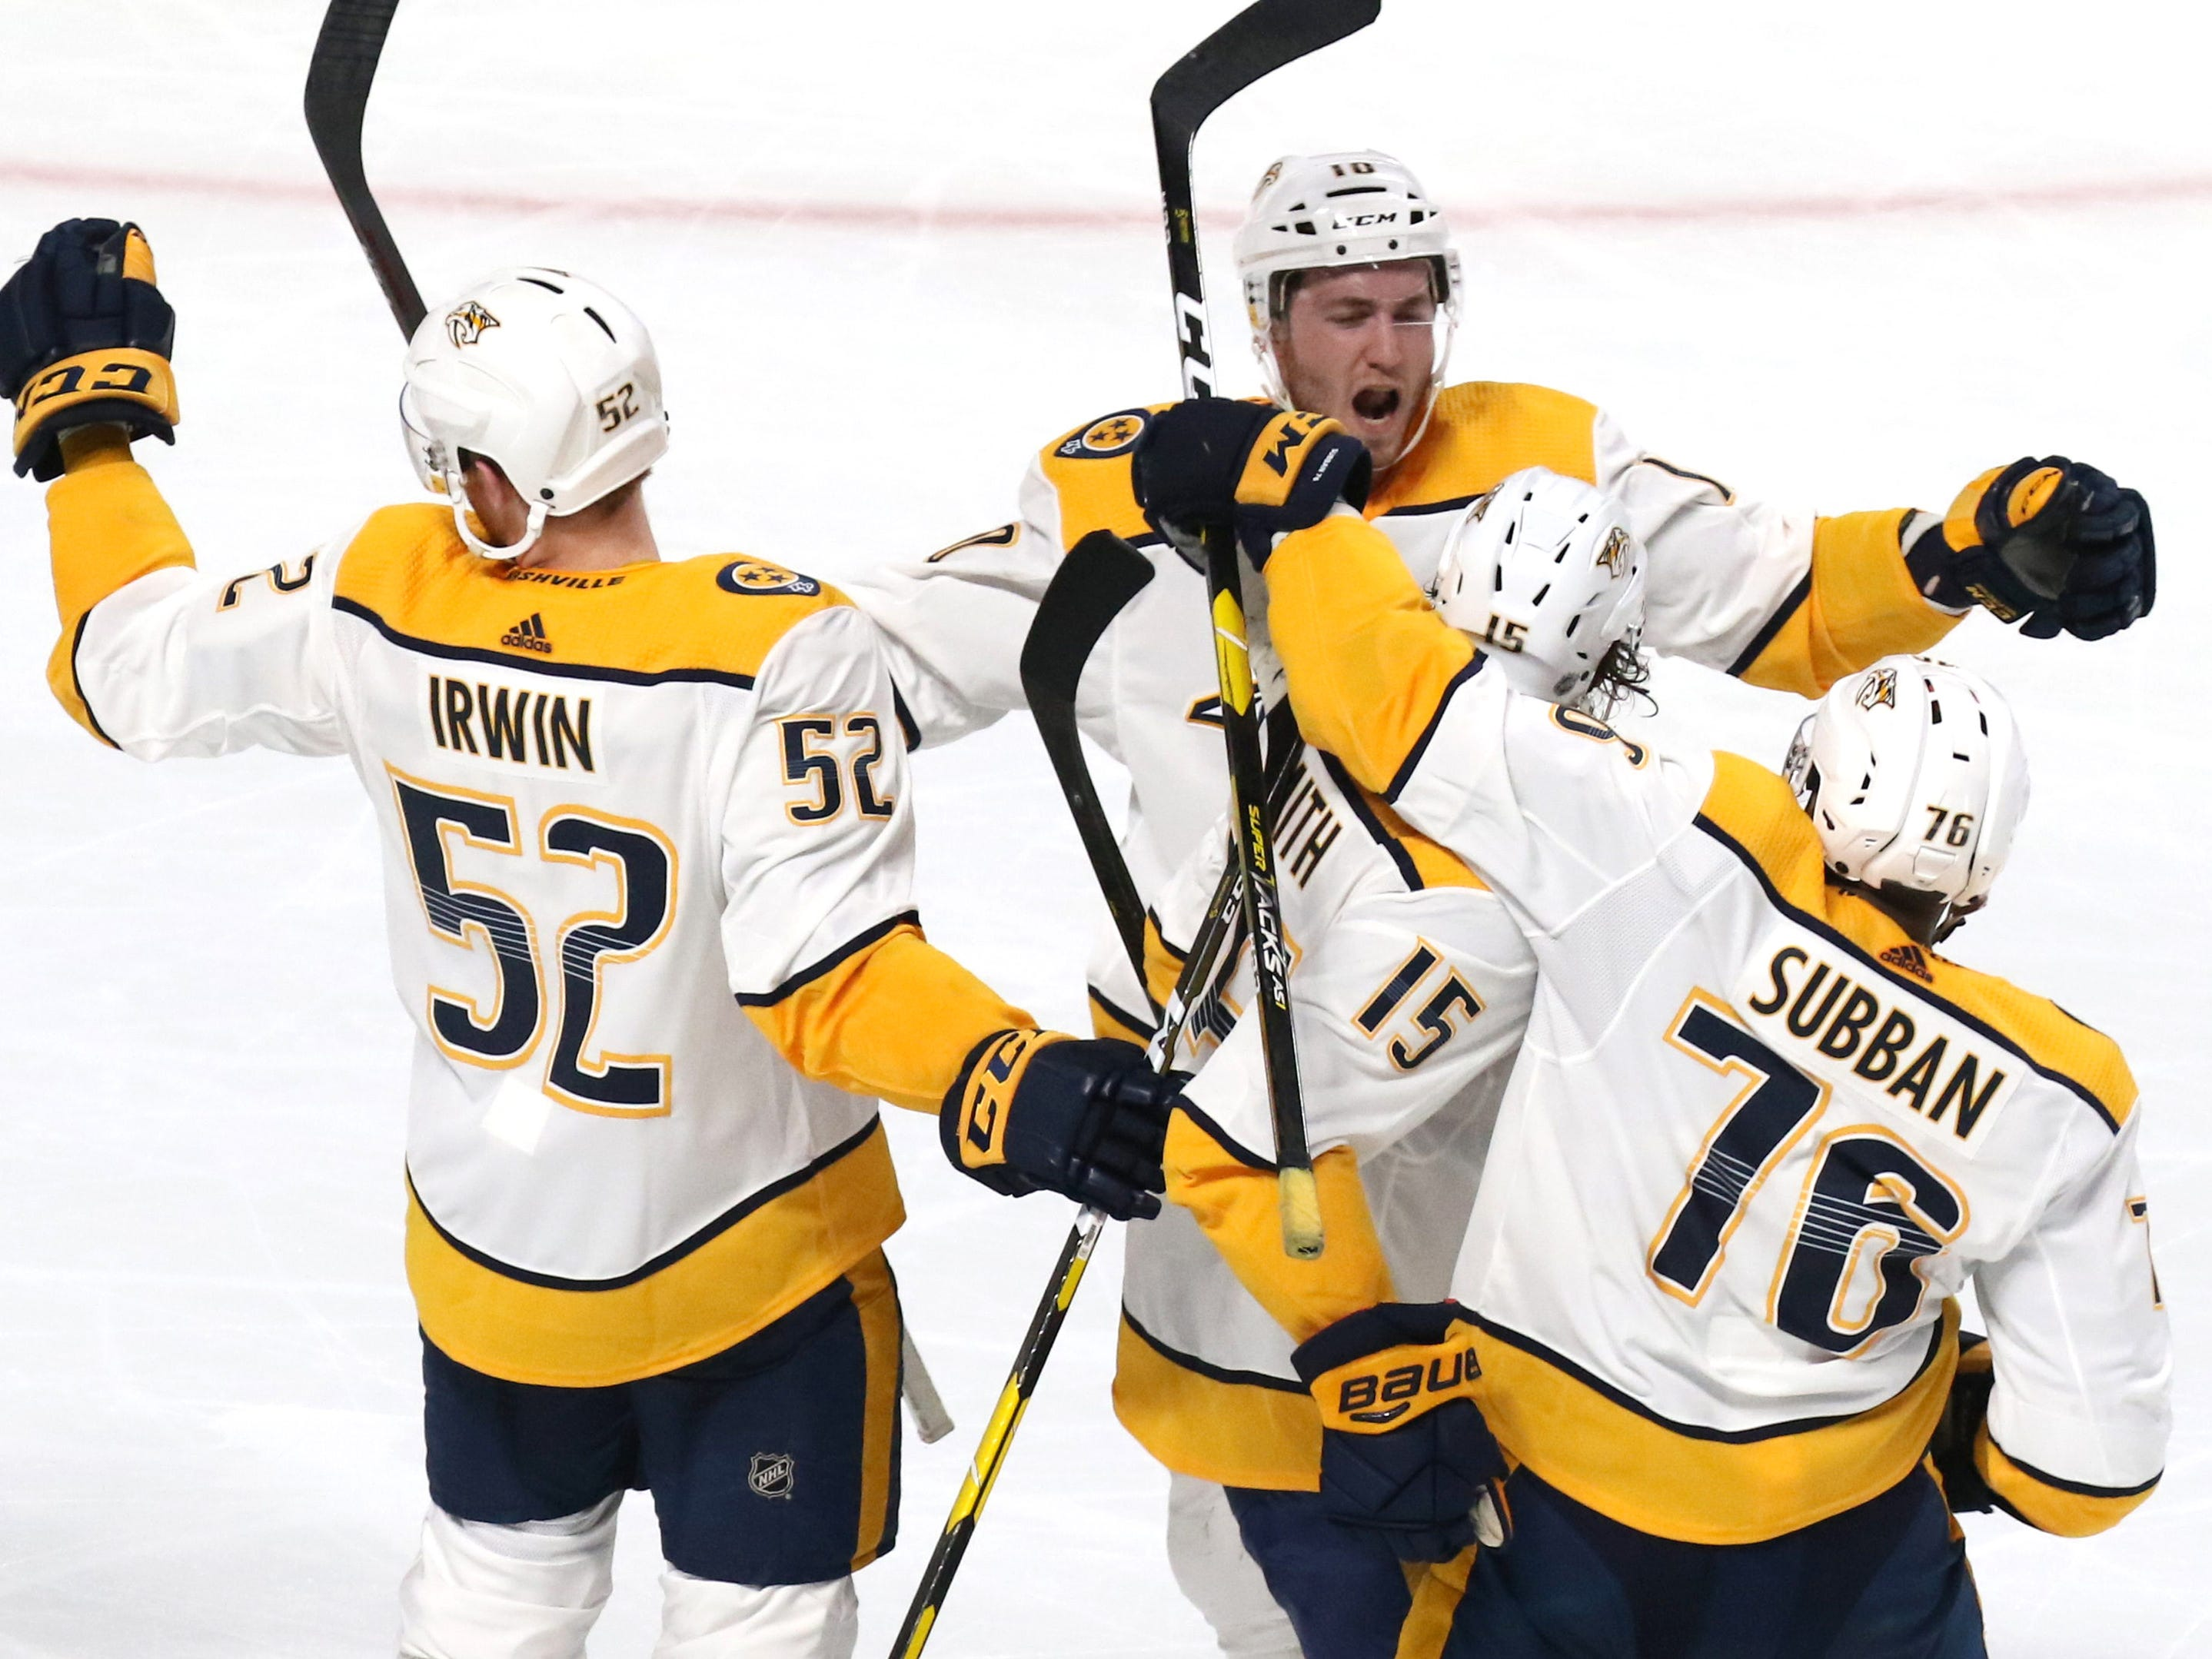 Jan. 5, 2019: Preds 4, Canadiens 1-- Nashville Predators right wing Craig Smith (15) celebrates with teammates after scoring a goal against the Montreal Canadiens during the second period at Bell Centre.